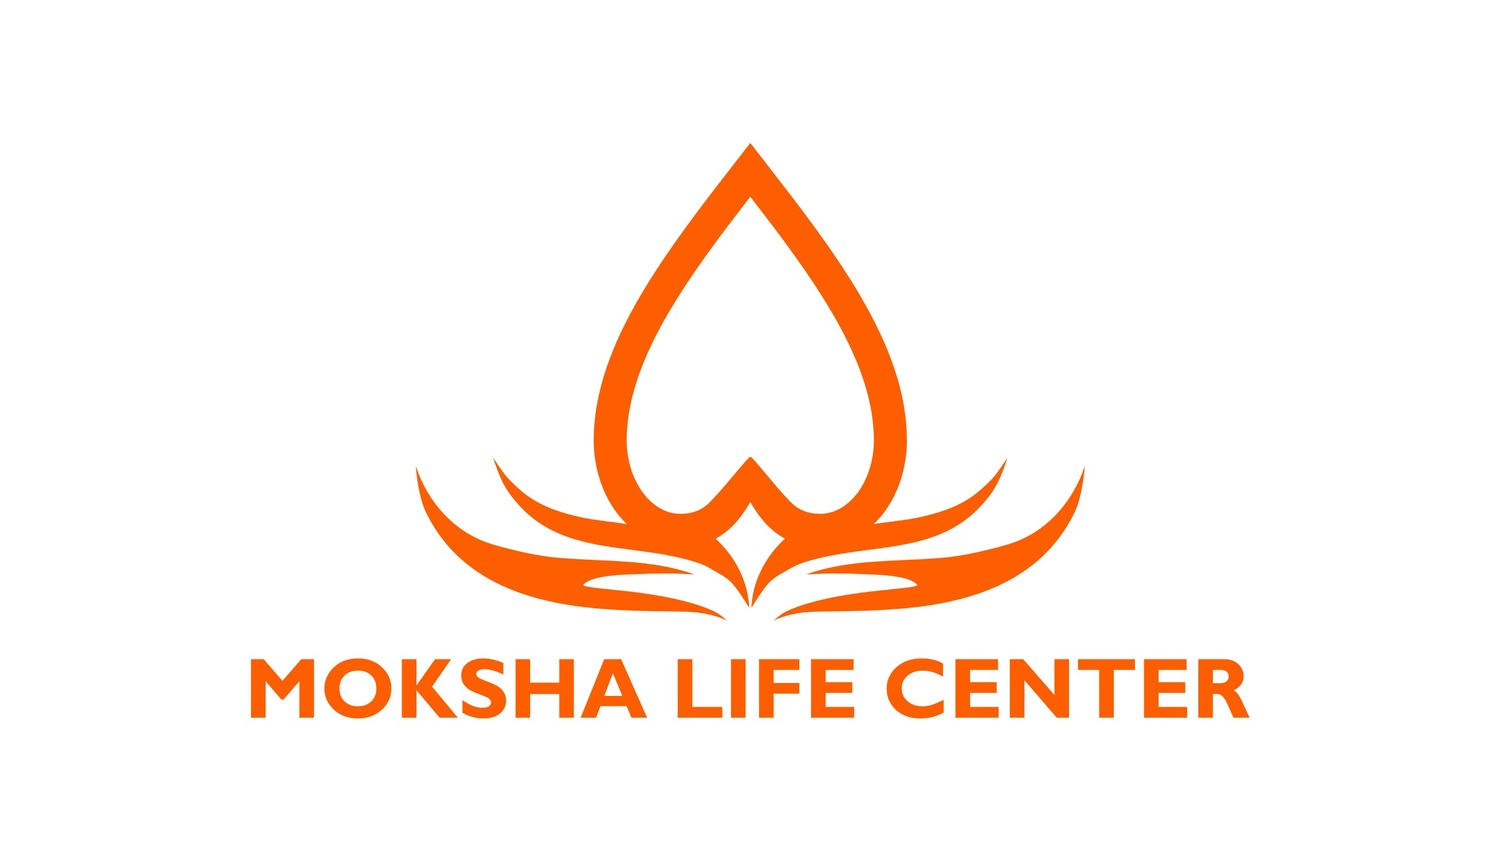 Moksha Life Center